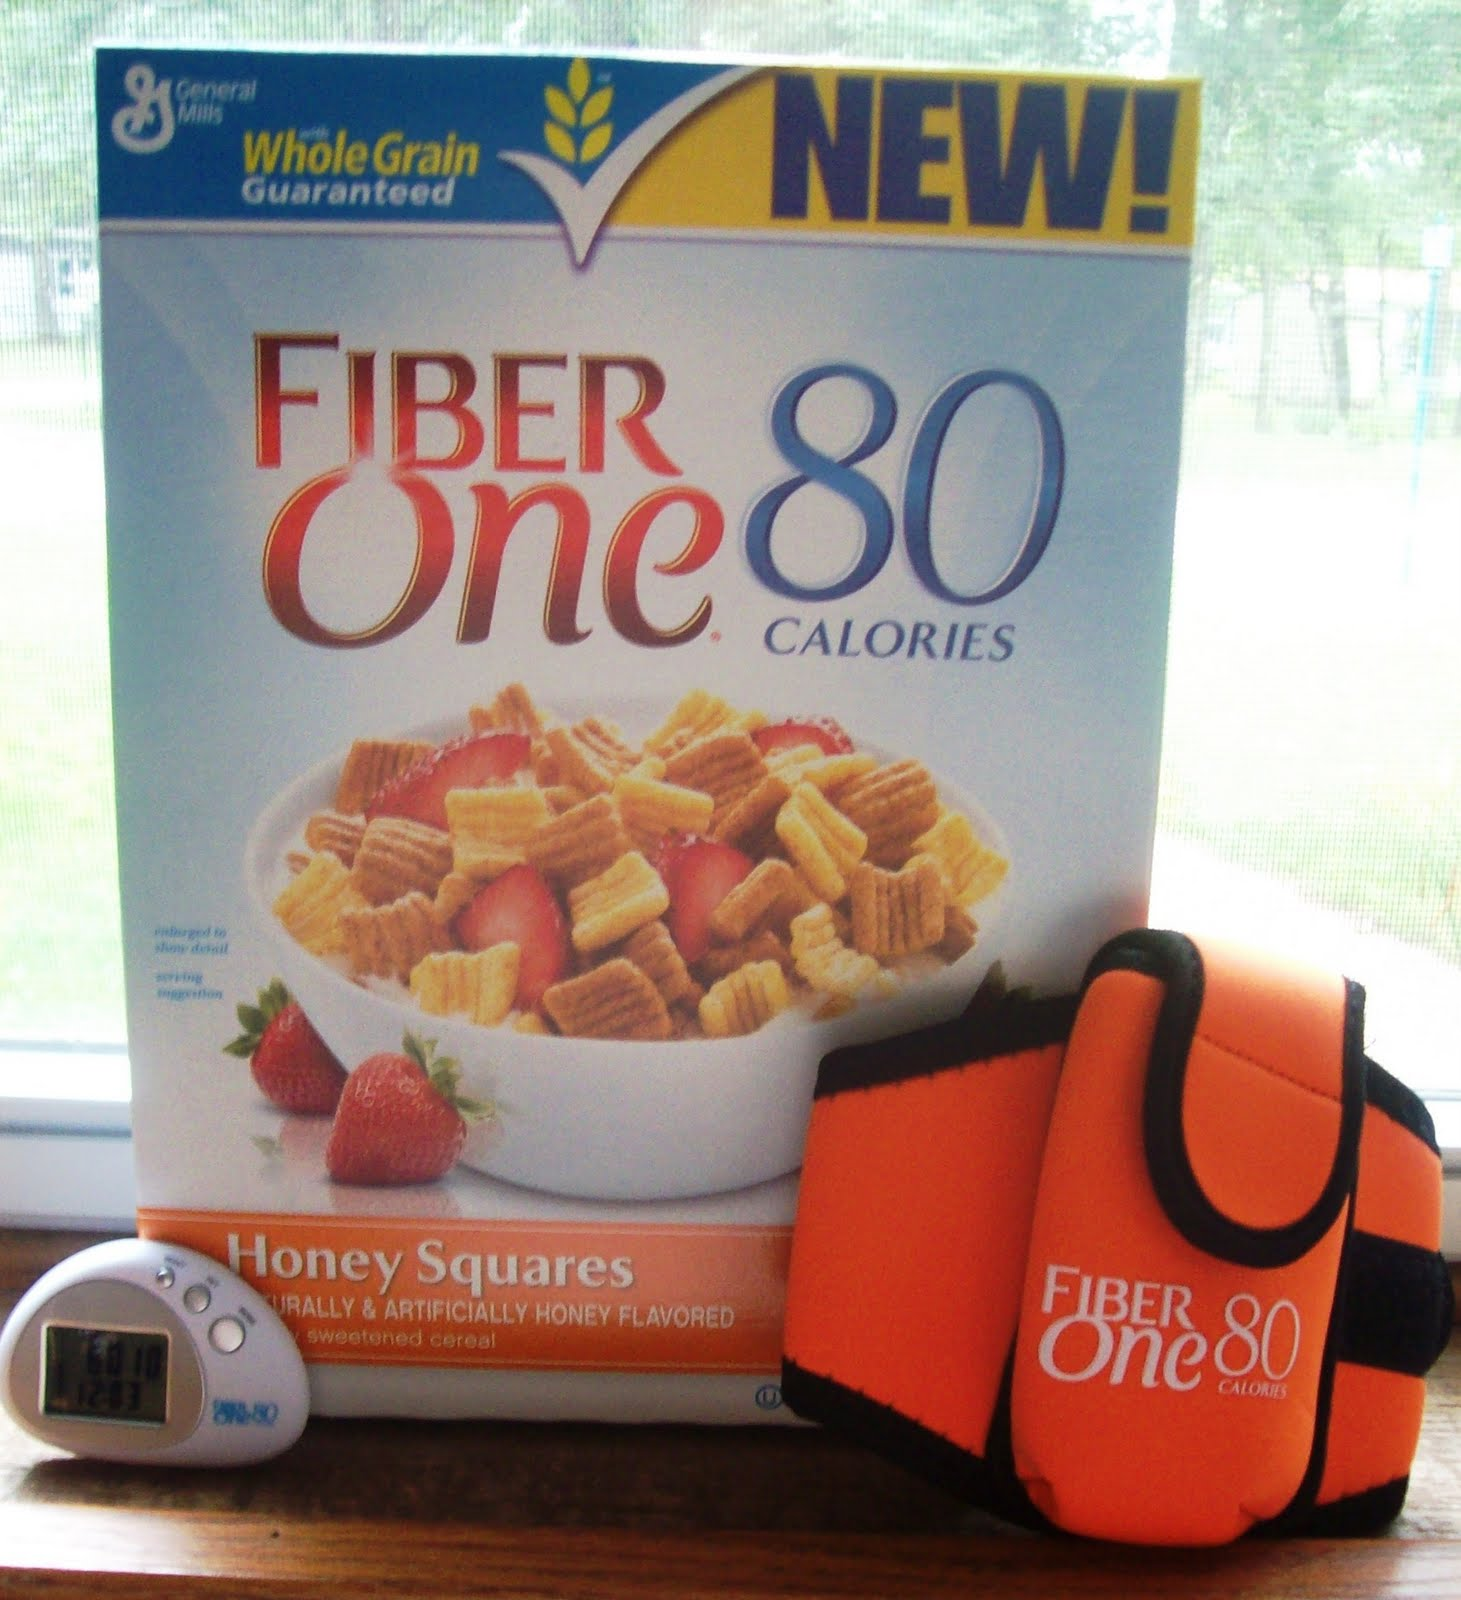 Fiber One Review & GIveaway